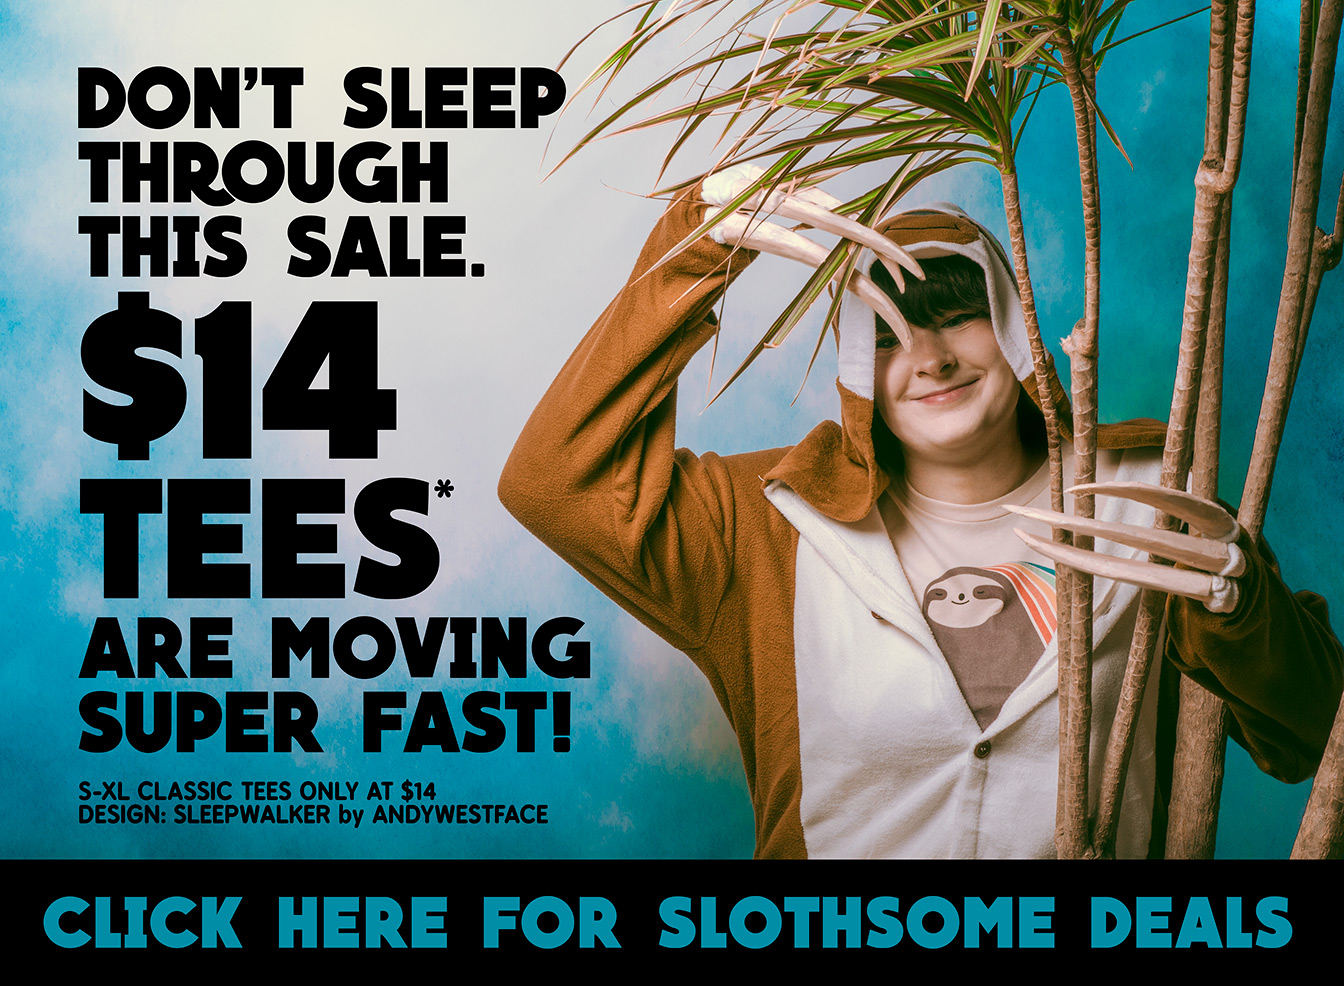 Don't sleep through the sale! Tees are $14 and moving fast. Click to shop now!